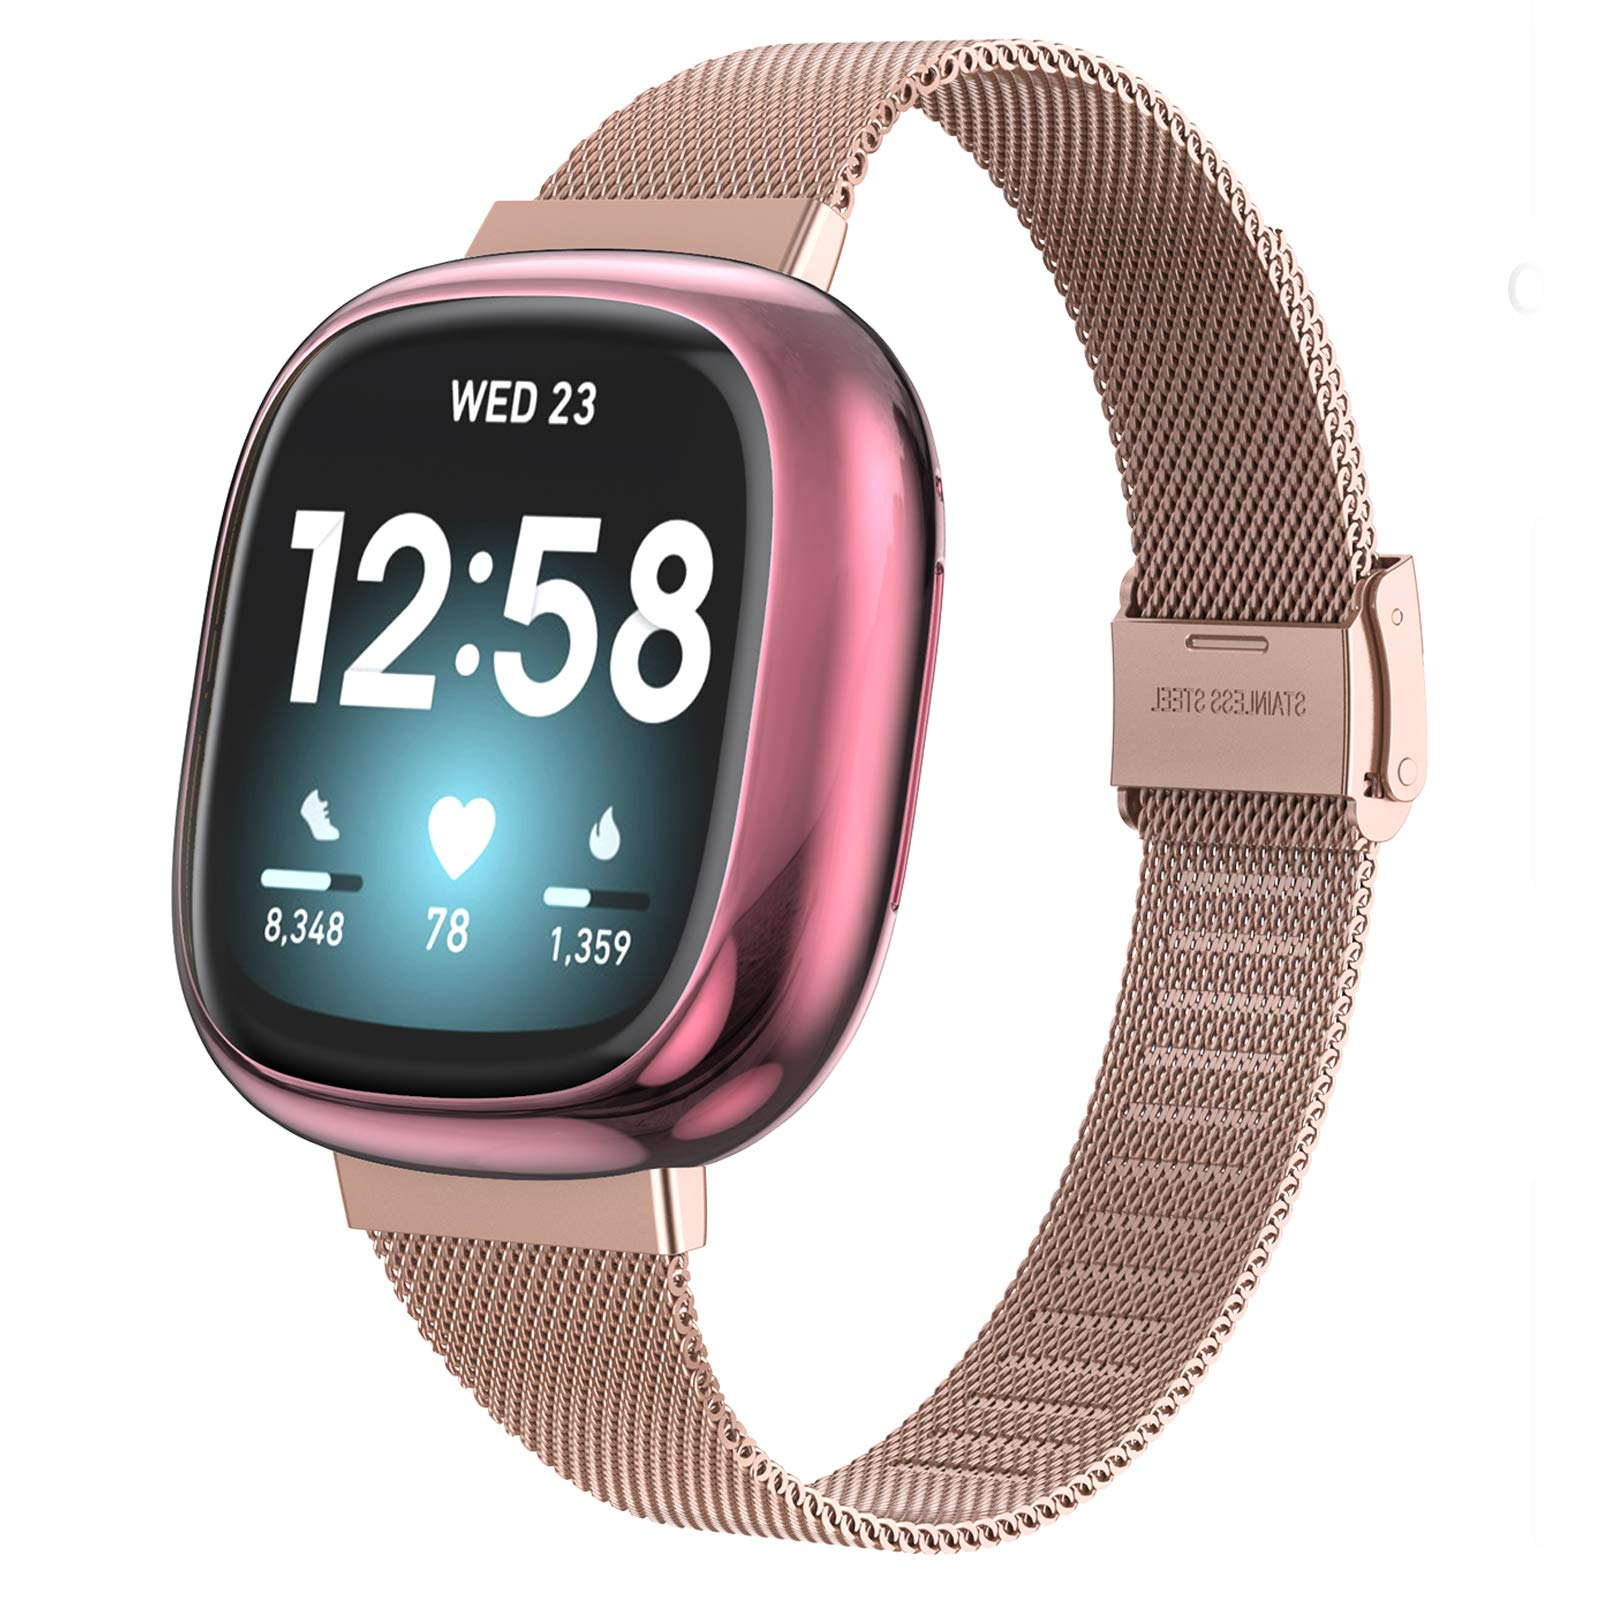 Girovo Metal Bands with Screen Protector Case Compatible with Fitbit Versa 3/Sense, Stainless Steel Mesh Bands Strap Bracelet Wristbands Accessories for Fitbit Versa 3 Bands for Women Men, Pink Gold